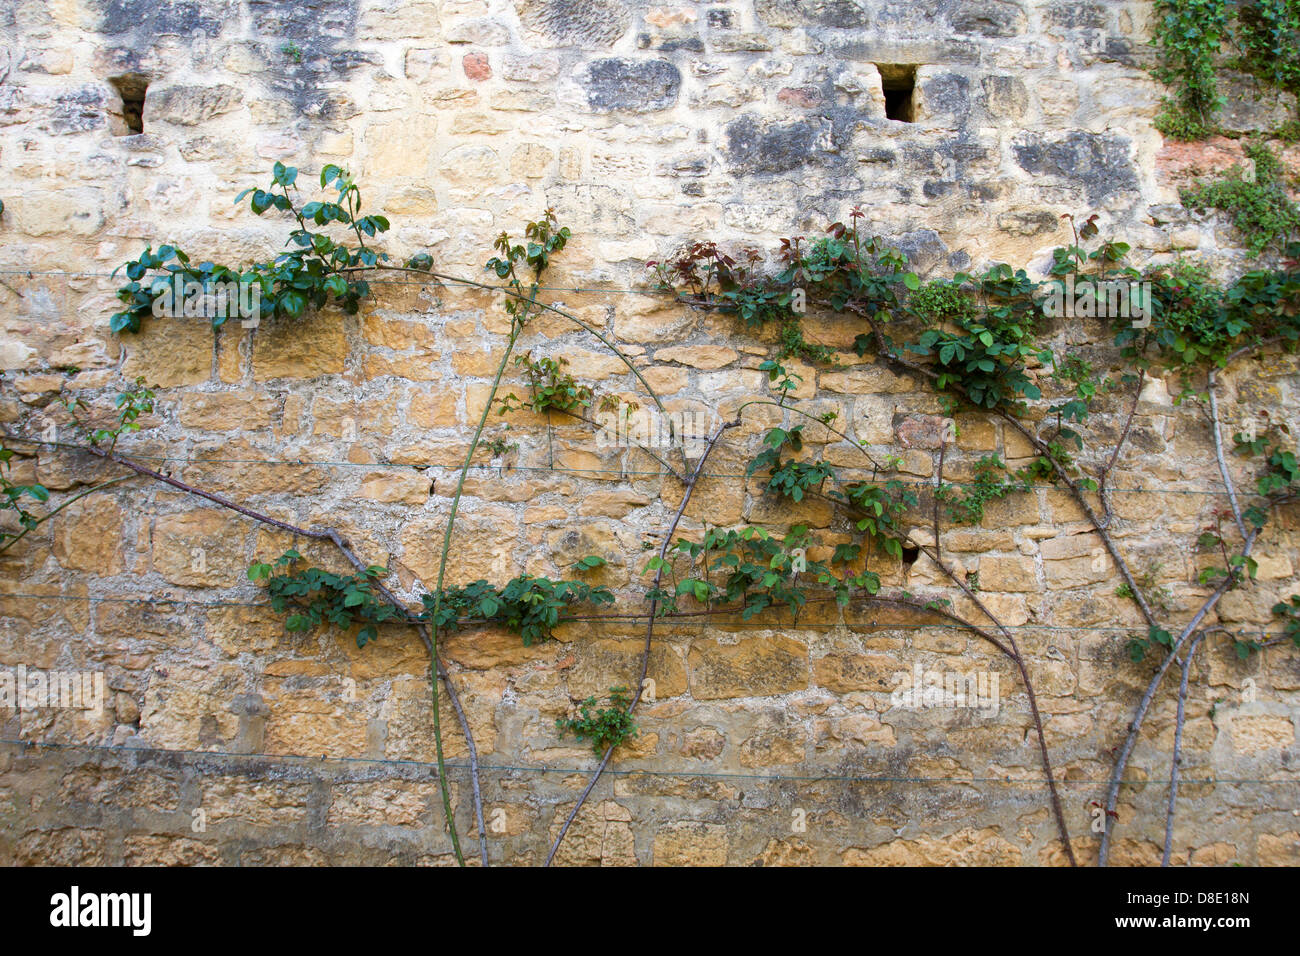 Vines growing along medieval stone wall in Sarlat, Dordogne region of France - Stock Image